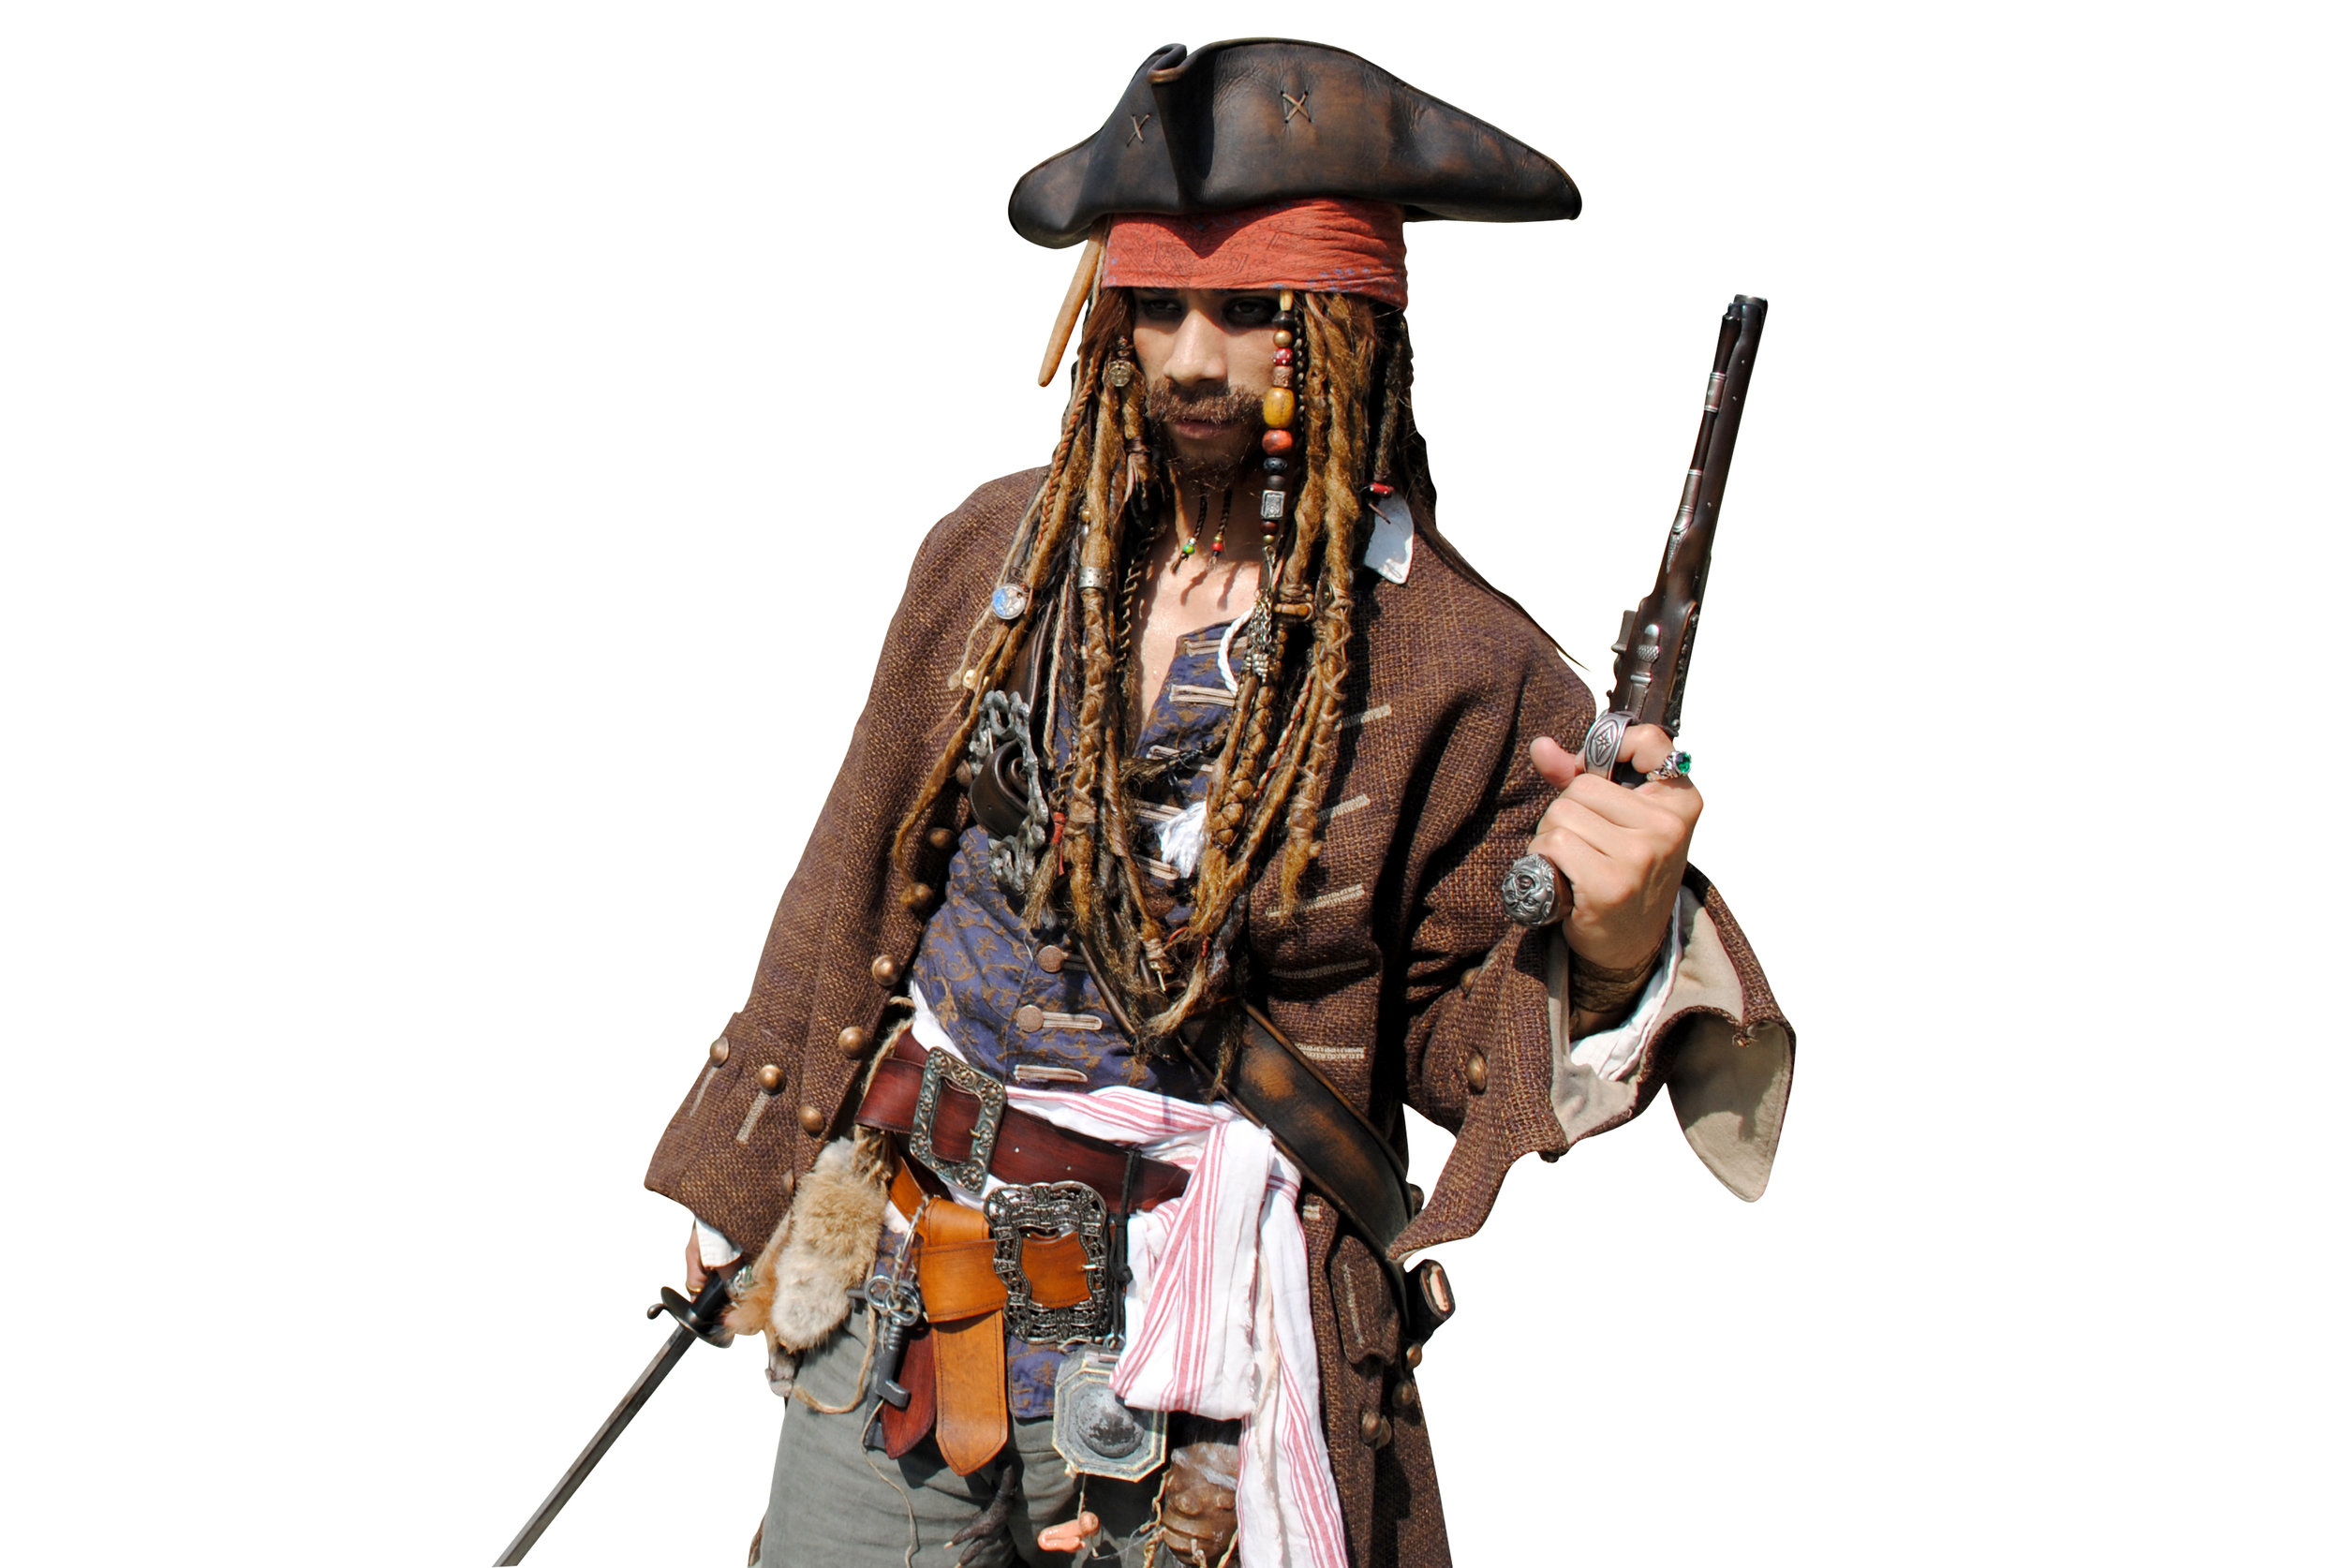 Jack Sparrow Full Costume Jack Sparrow Costumes By Anthony Zarrillo Jack Sparrow Wig Pirates Of The Caribbean Dead Men Tell No Tales